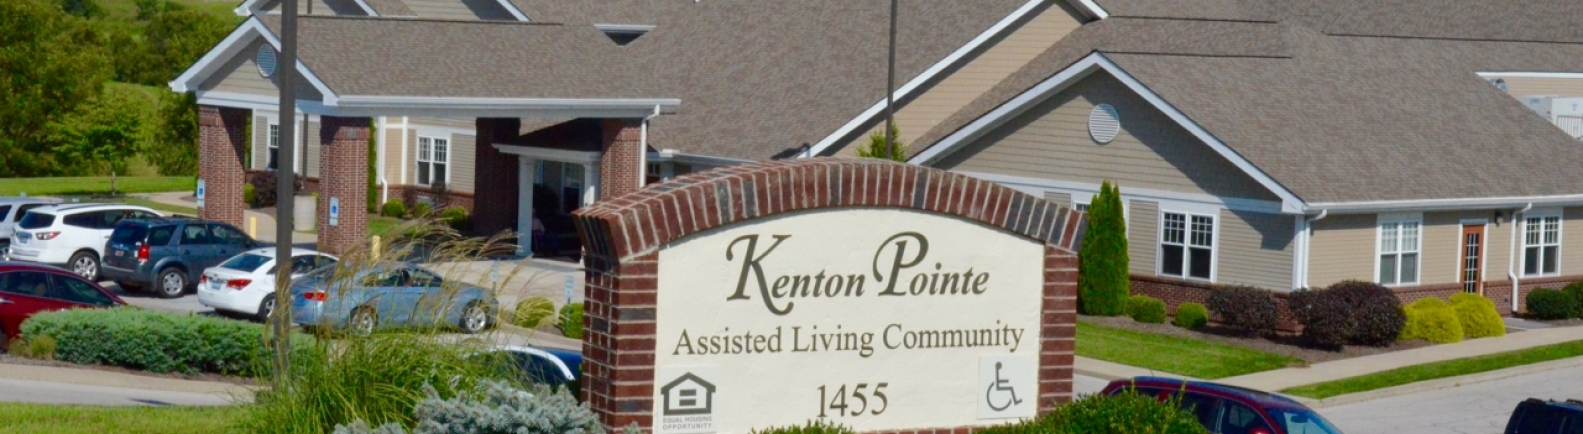 Kenton_Pointe_1.jpg